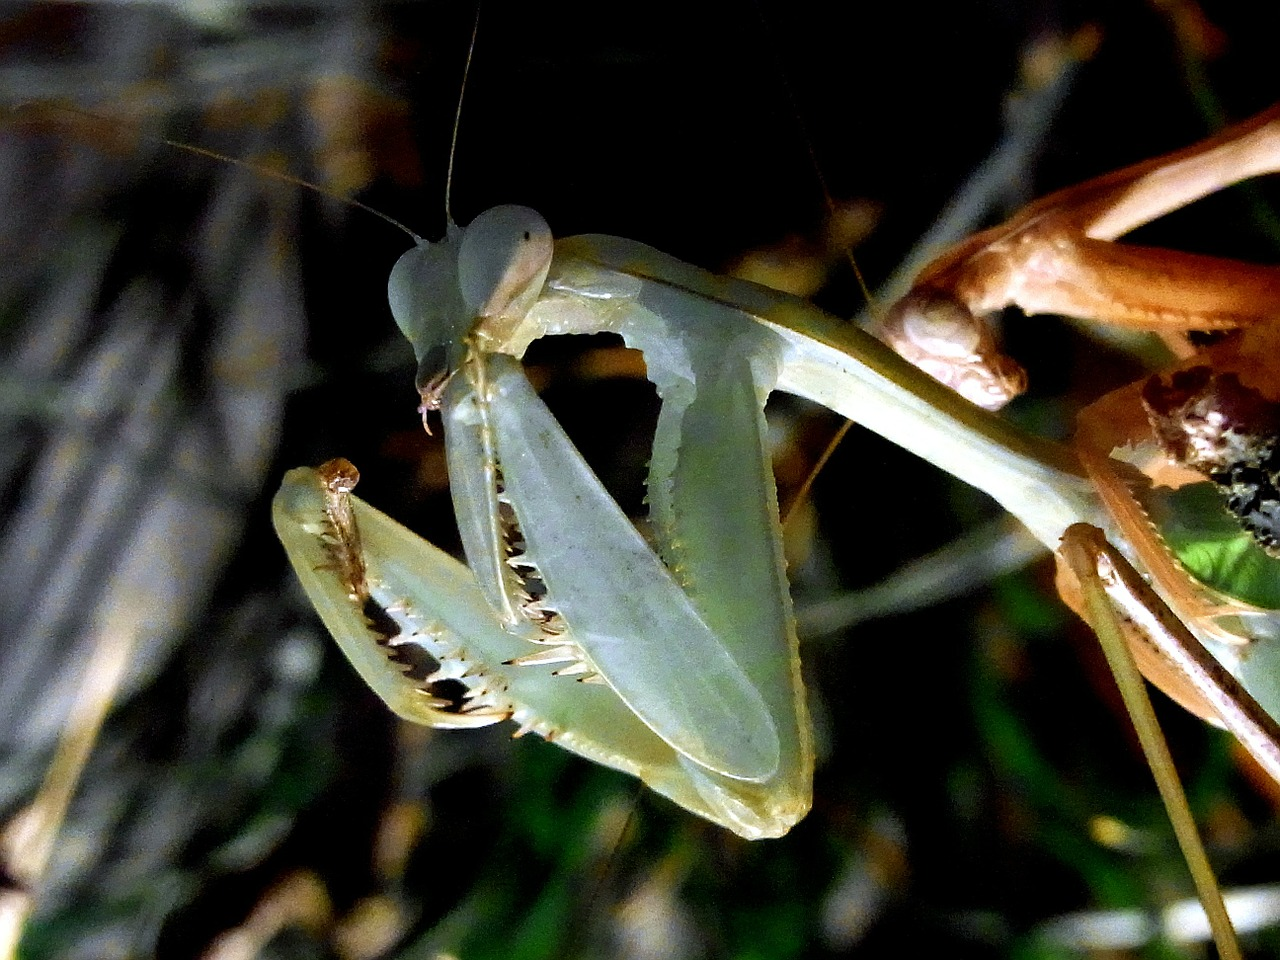 fishing locust,praying mantis,insect,feeding,food,eat,free pictures, free photos, free images, royalty free, free illustrations, public domain